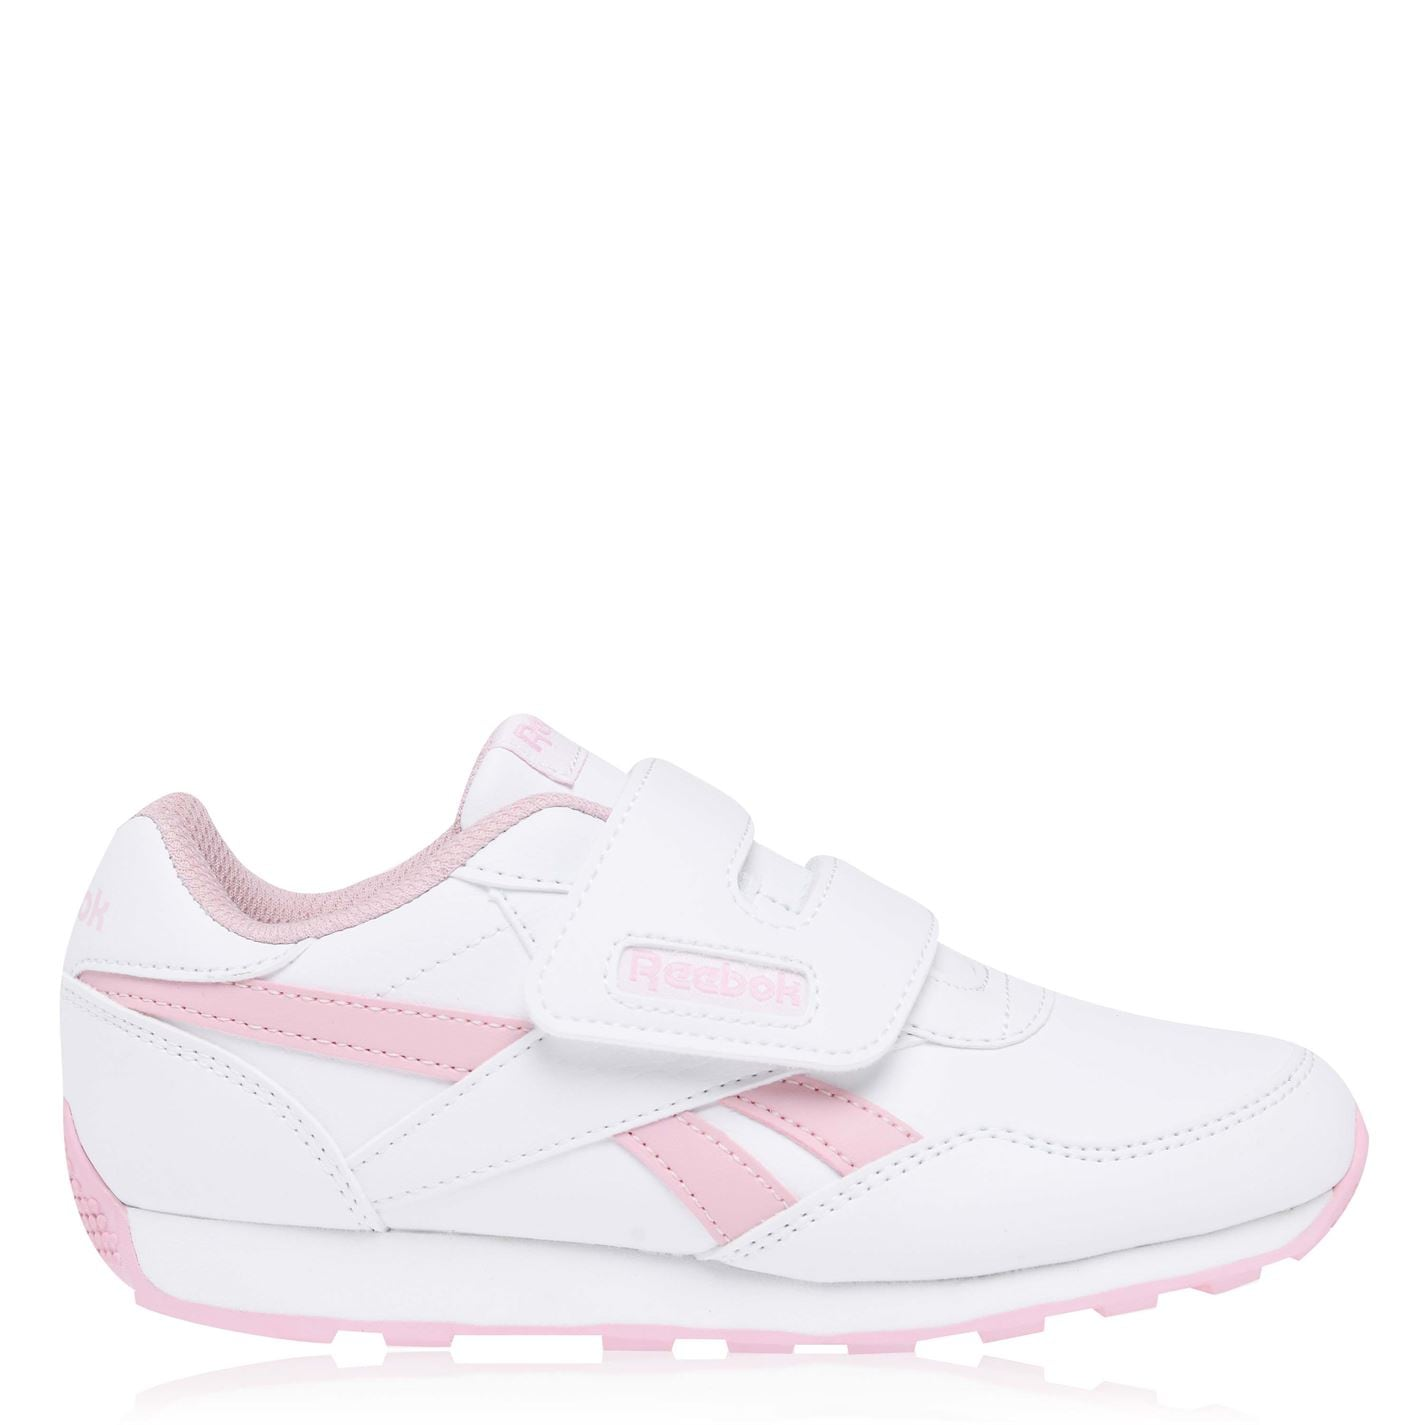 Reebok Rewind Girls Trainers White/Pink